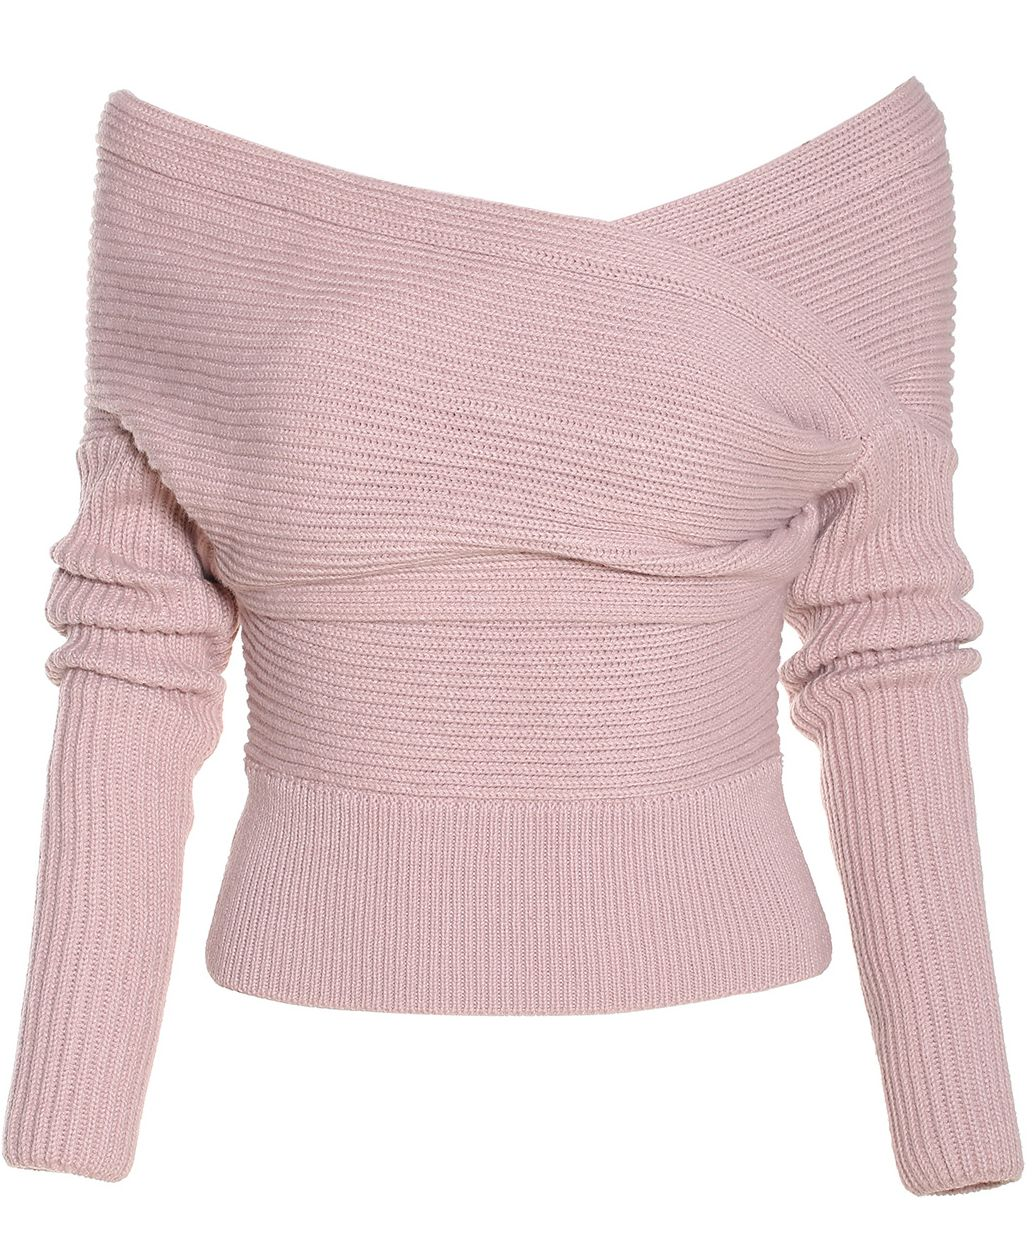 Pink Boat Neck Ribbed Sweater | Neck wrap, Shops and Boat neck